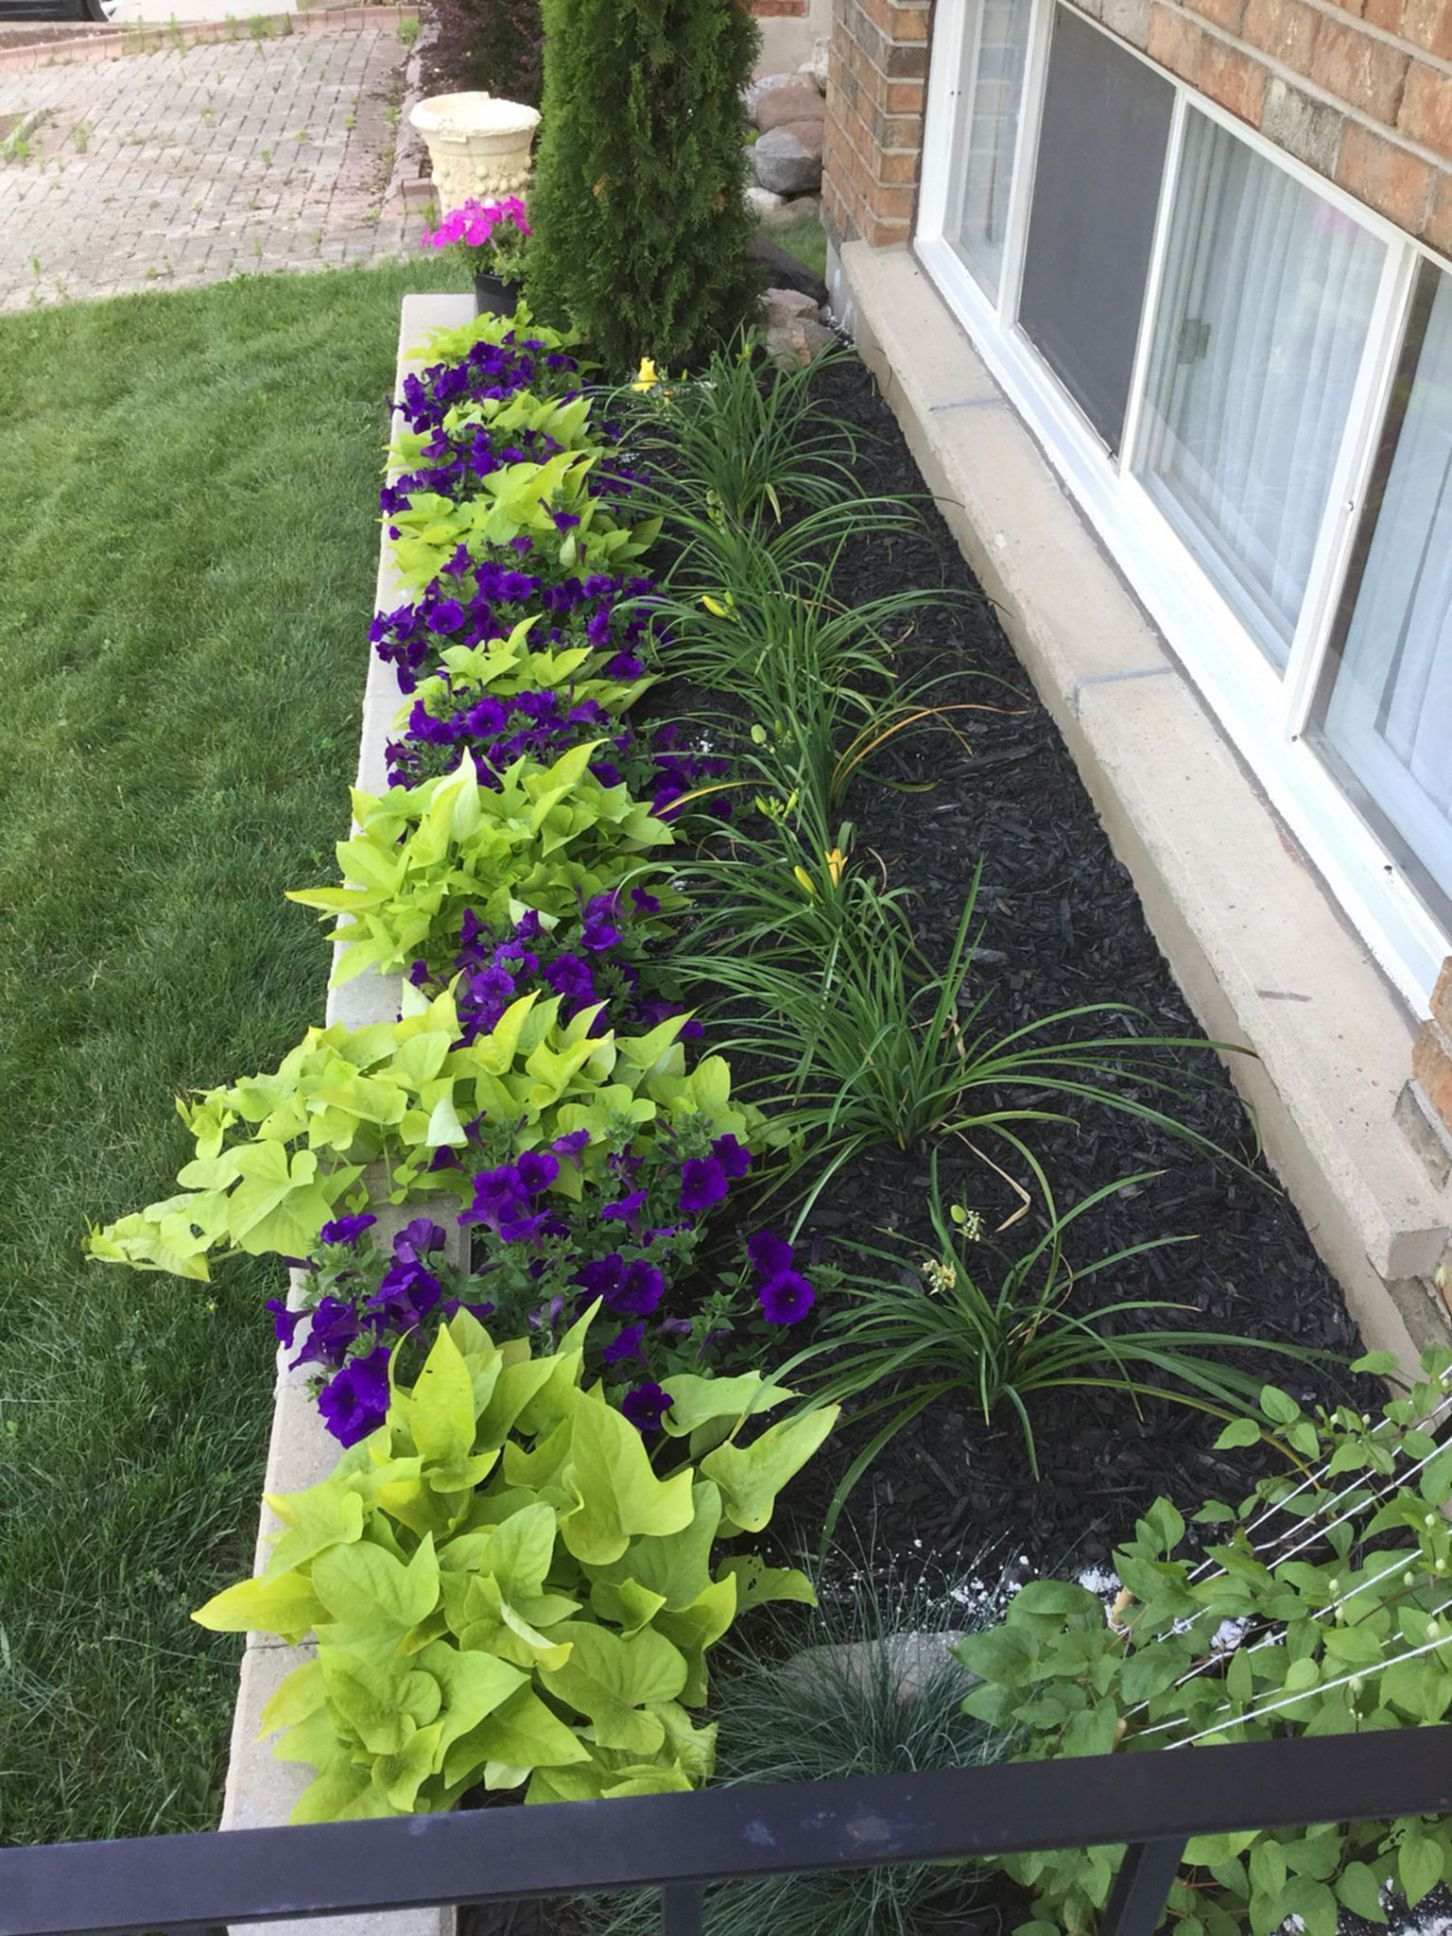 Exceptionnel Incredible Flower Beds Ideas To Make Your Home Front Yard Awesome 330  #LuxuryBeddingAwesome